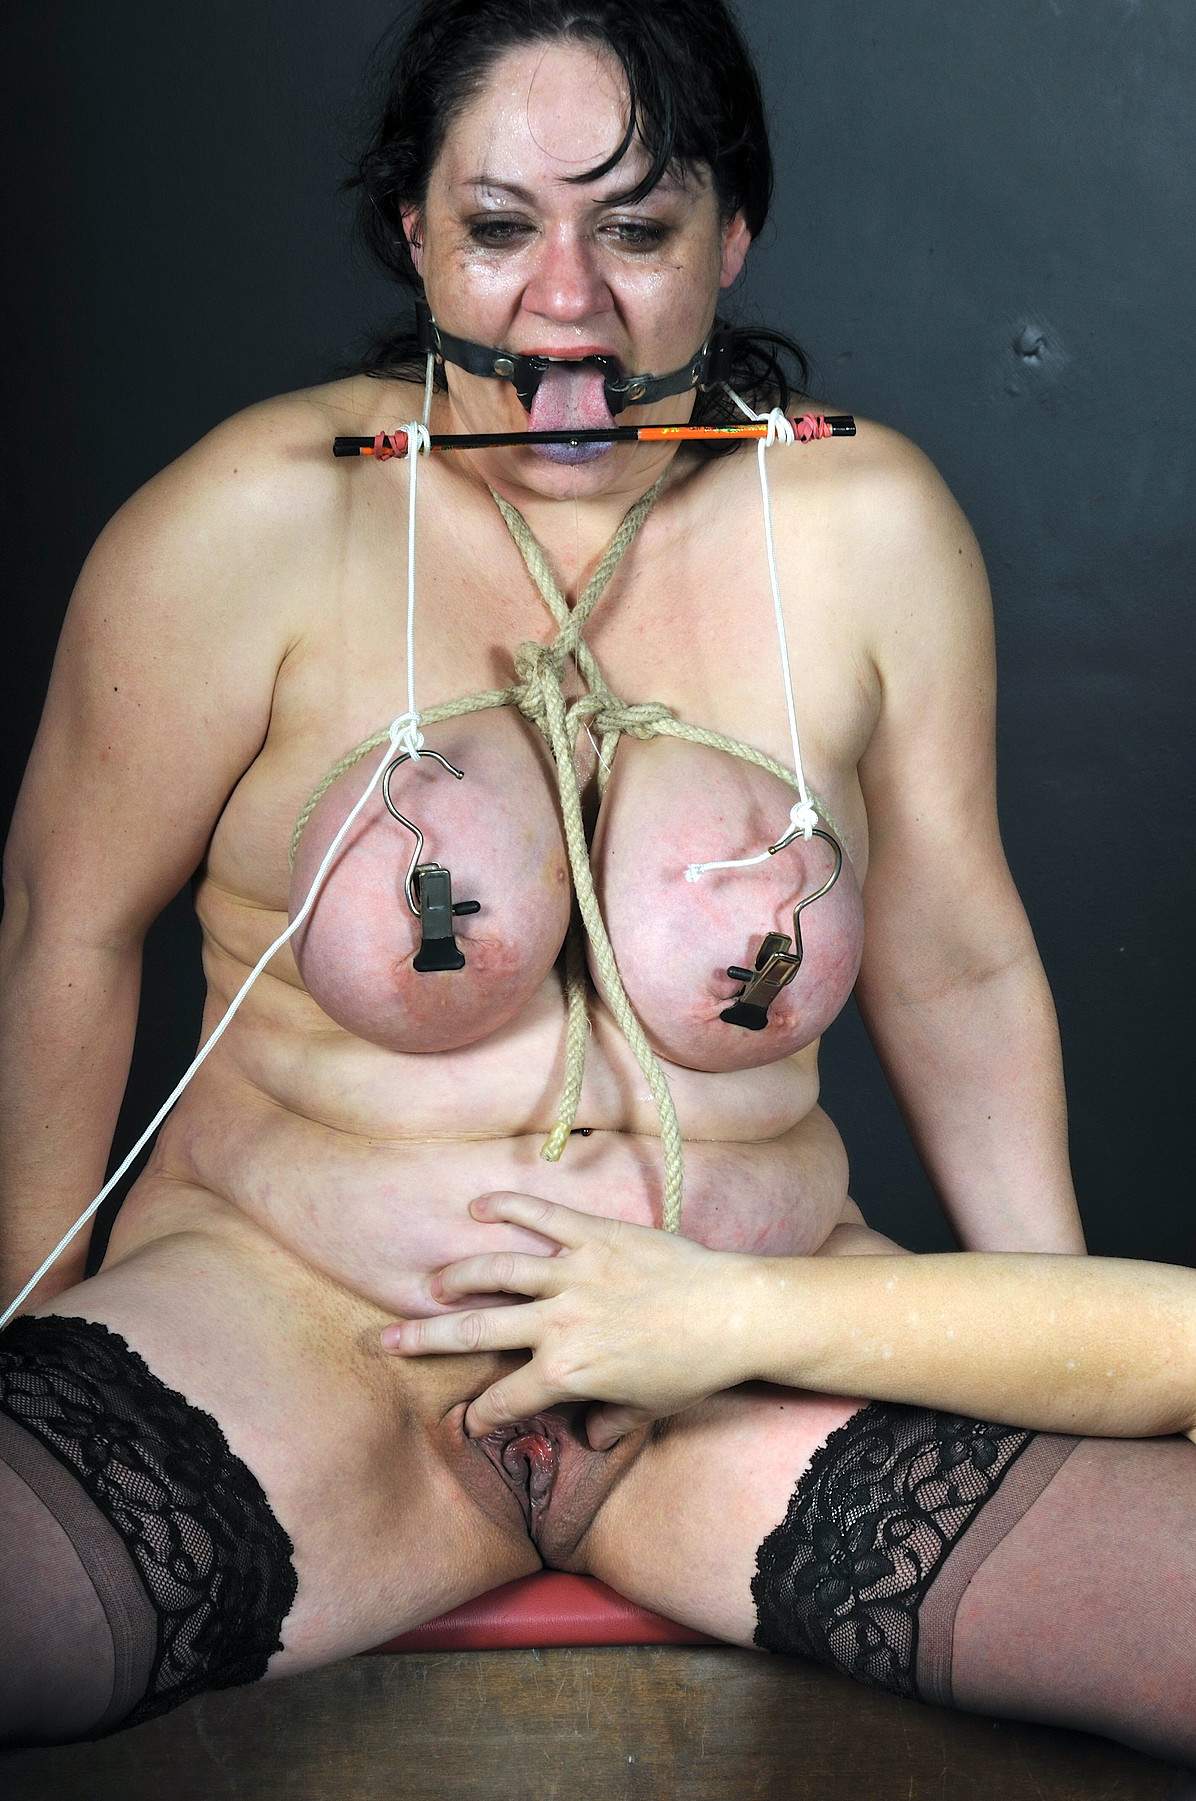 Idea bdsm older woman tortures slave story can speak